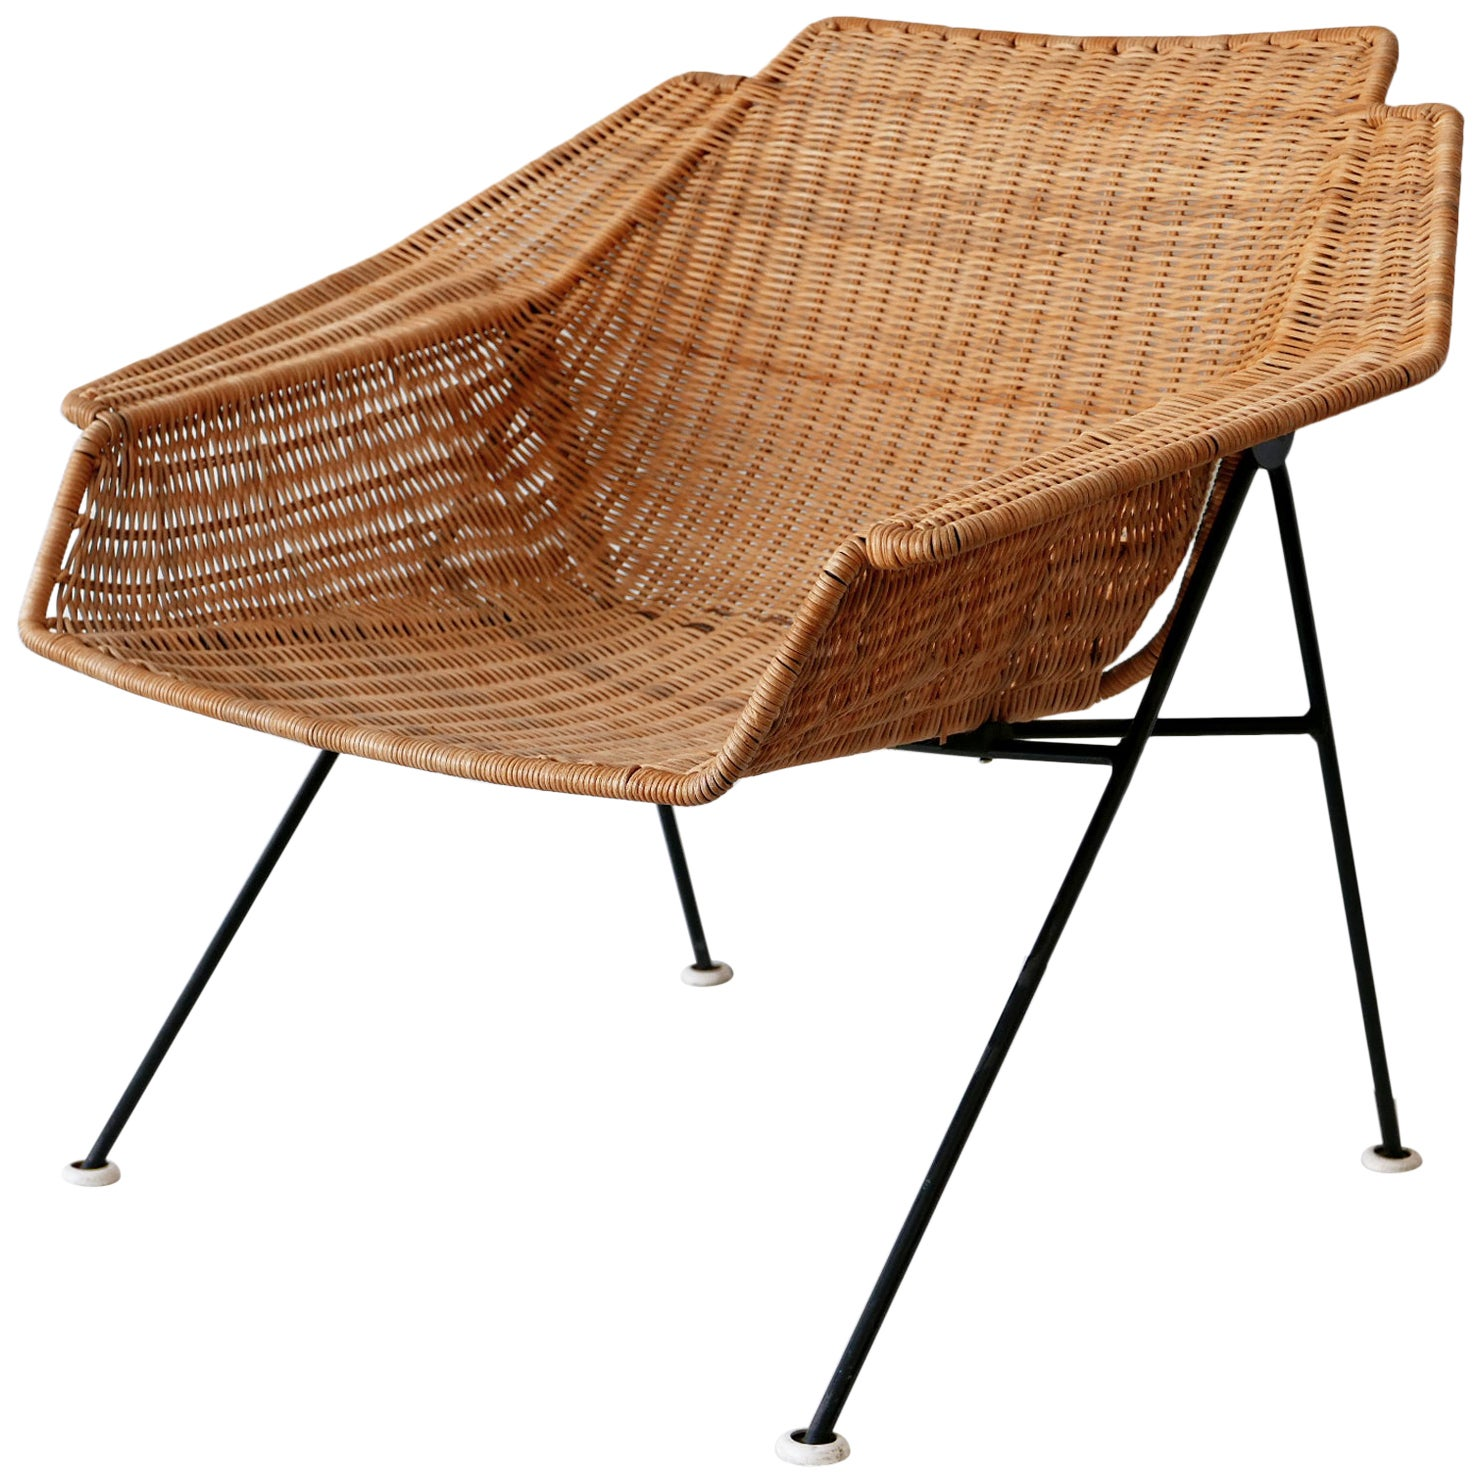 Exceptional Mid-Century Modern Wicker Lounge Chair or Armchair 1950s Sweden